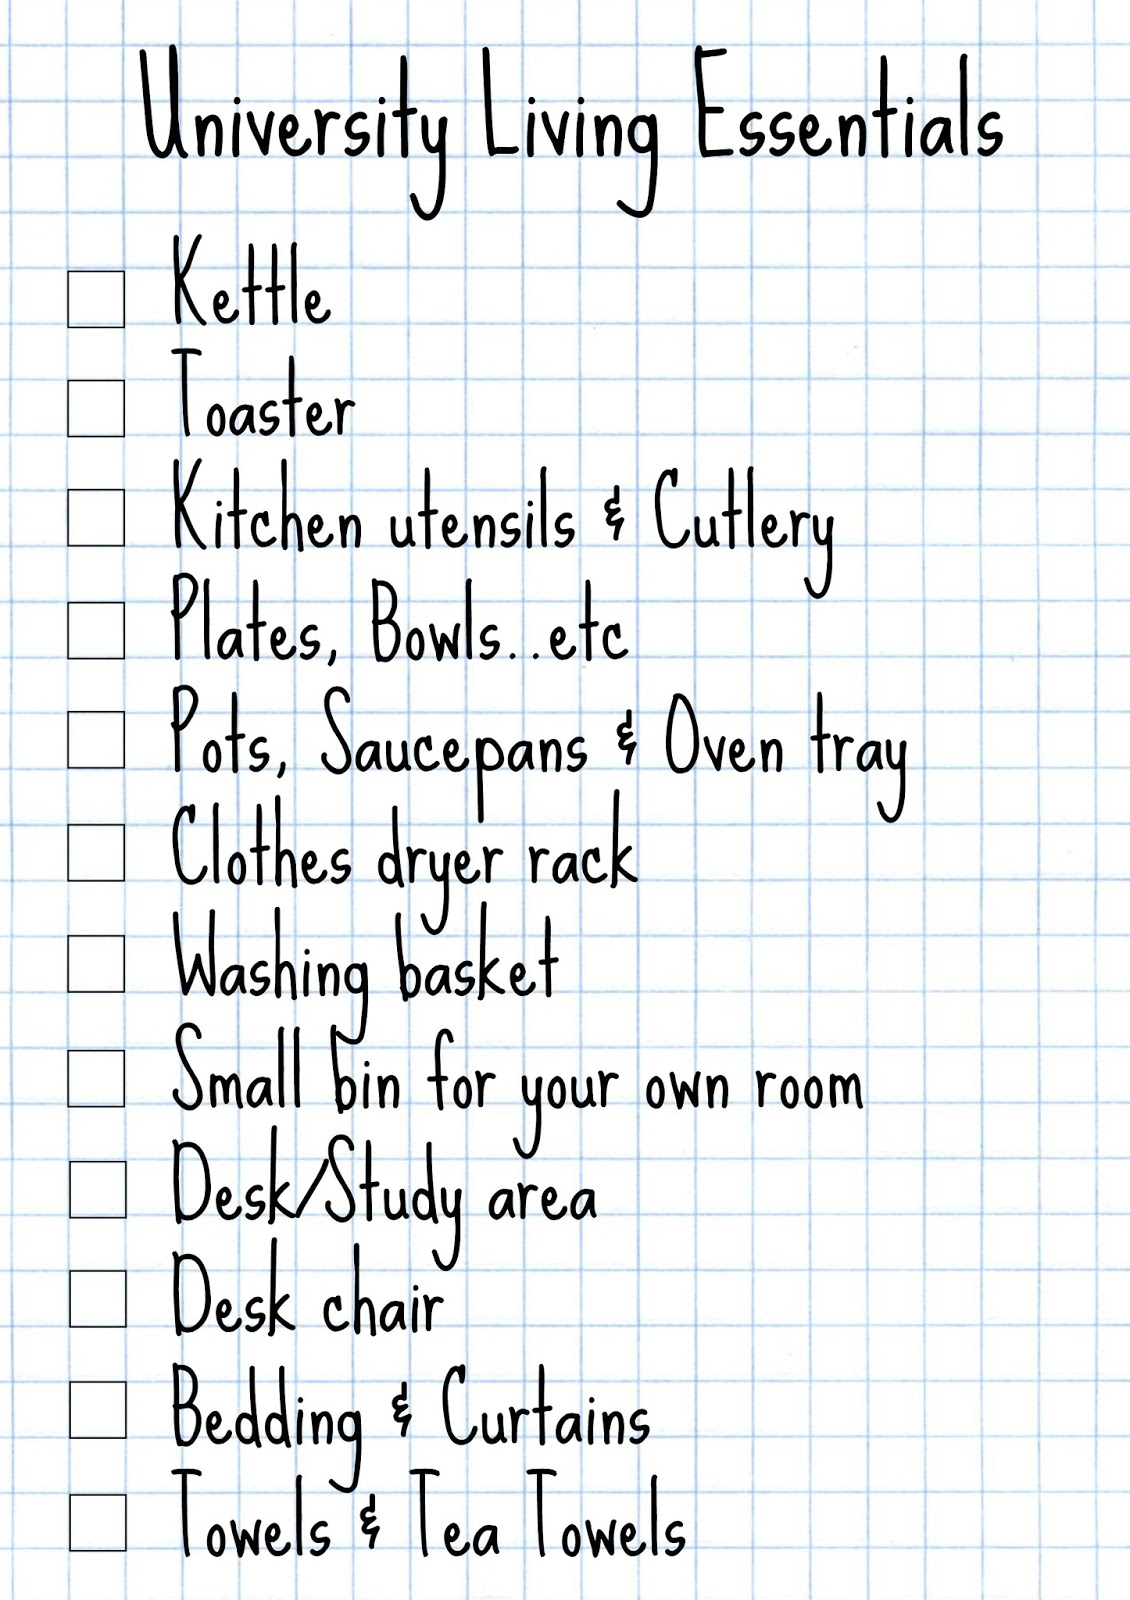 These Lists Dont Include A Stationary List As I Put That In My Back To School Essentials Post